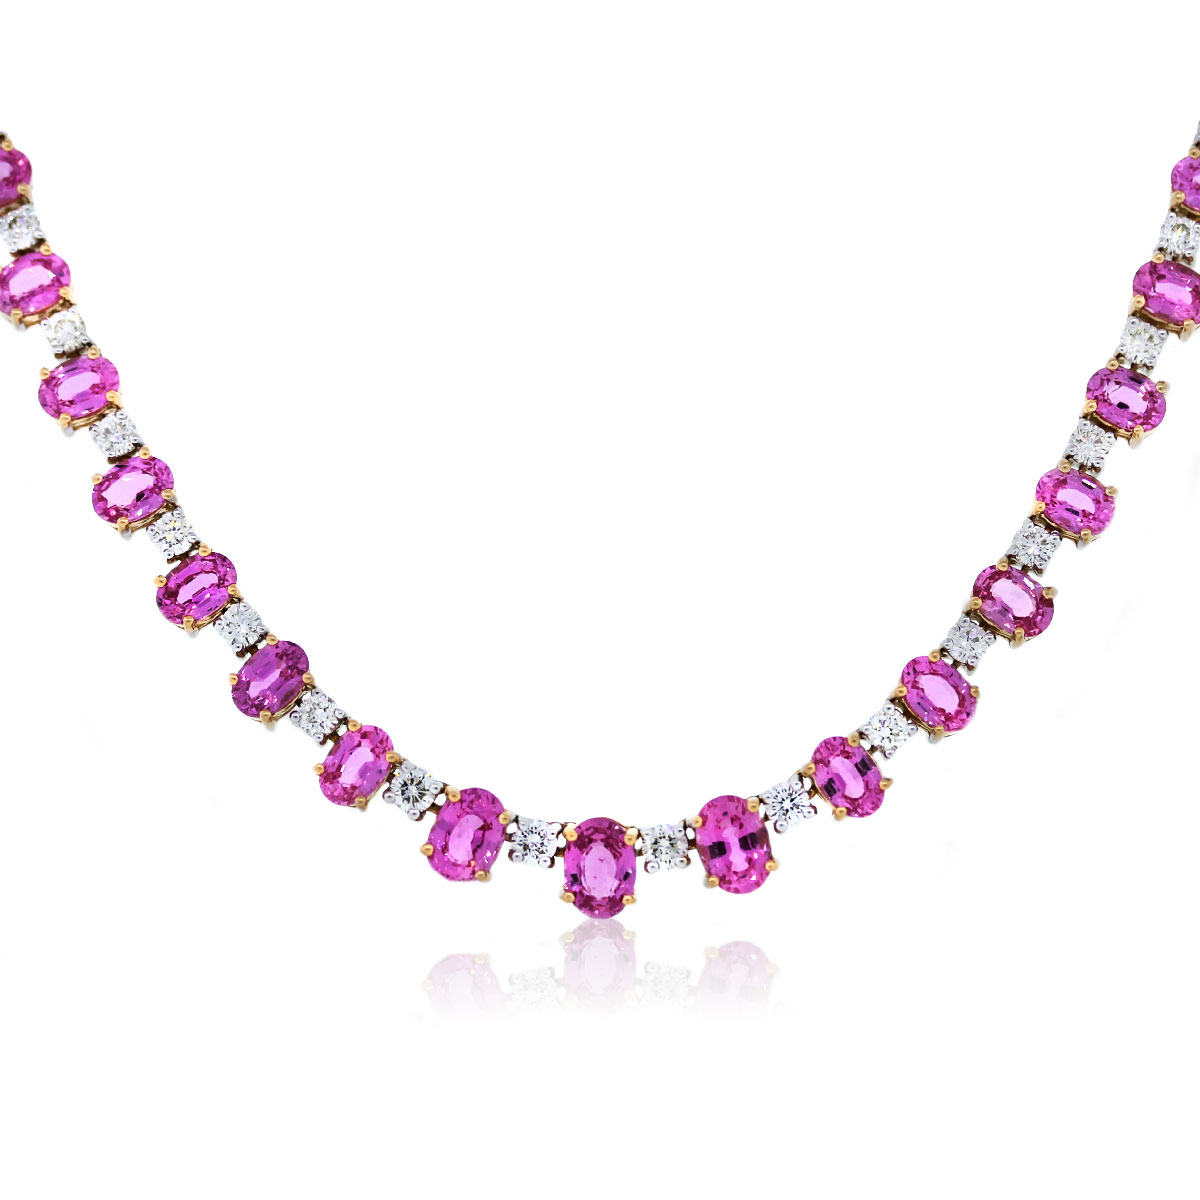 867d3216b7fa0 18k Two Tone Gold Pink Sapphire and Diamond Tennis Necklace-Boca Raton